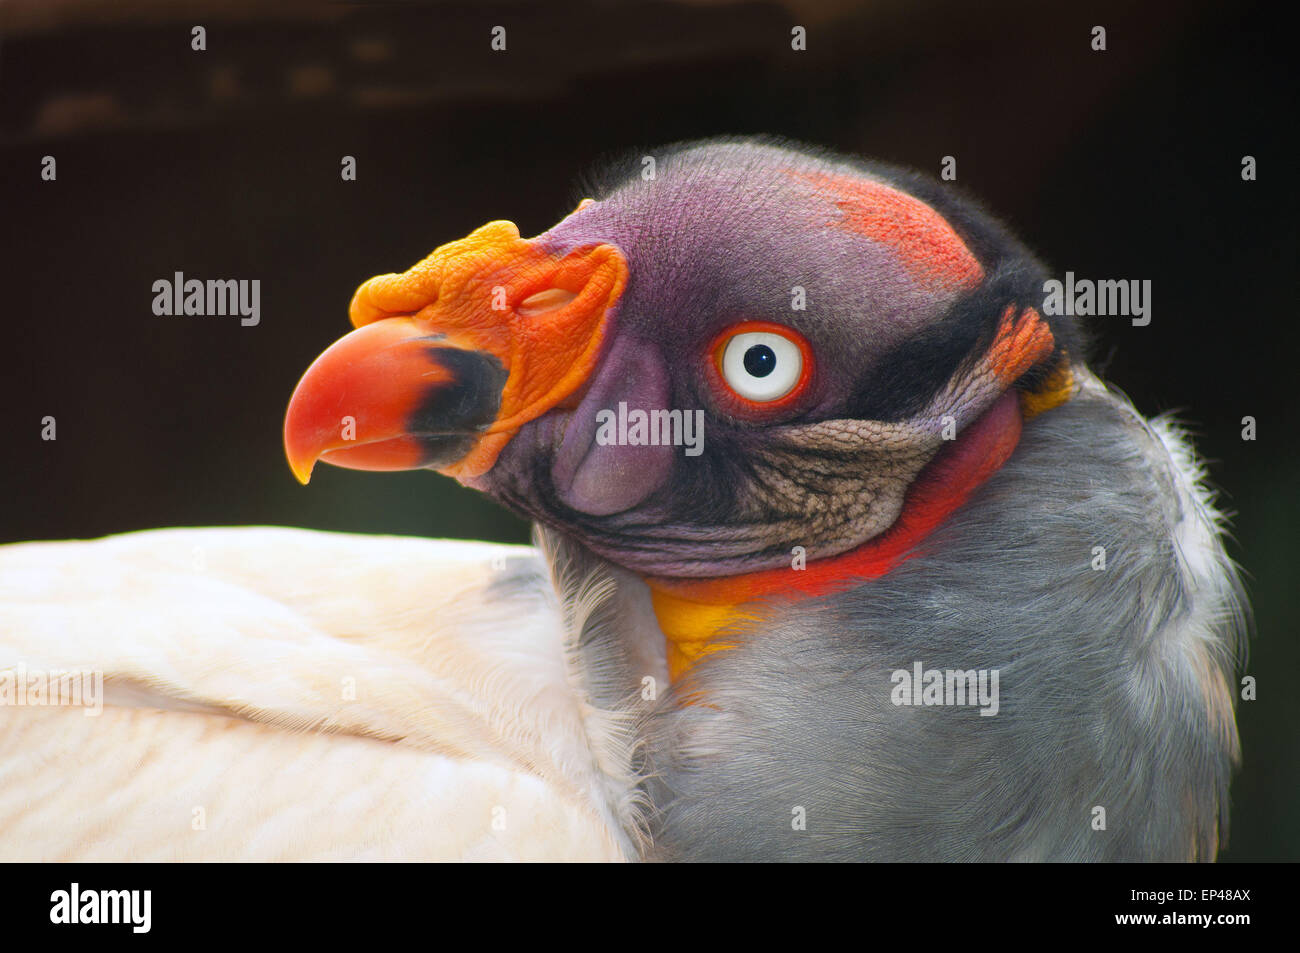 King Vulture, South Africa - Stock Image